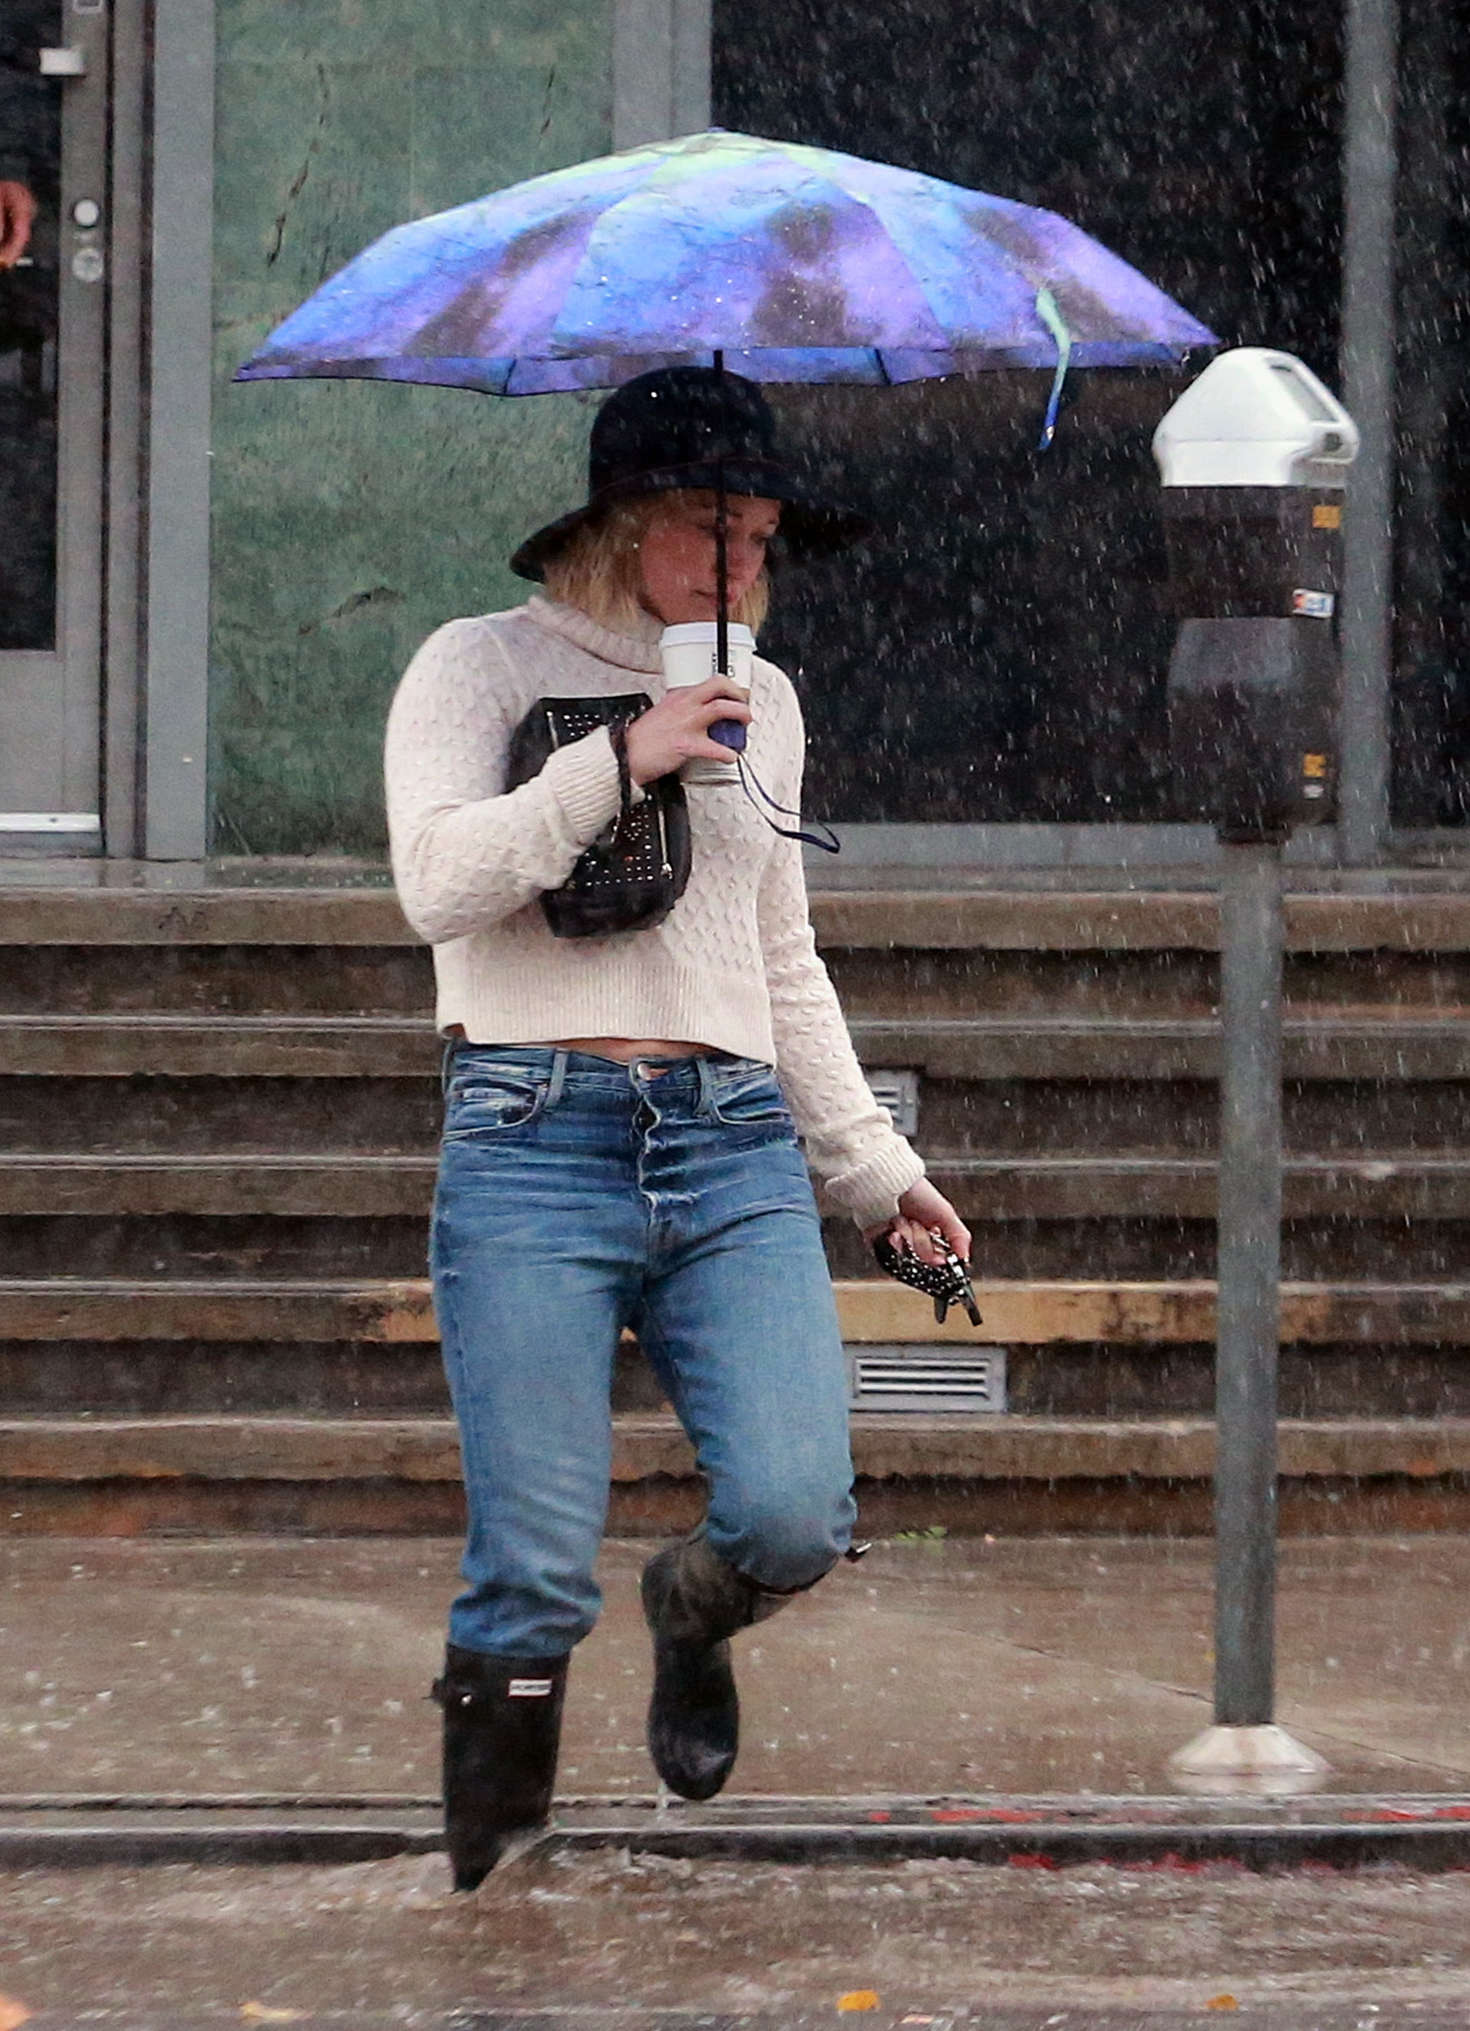 Hilary Duff 2016 : Hilary Duff in Jeans out on a rainy day -23